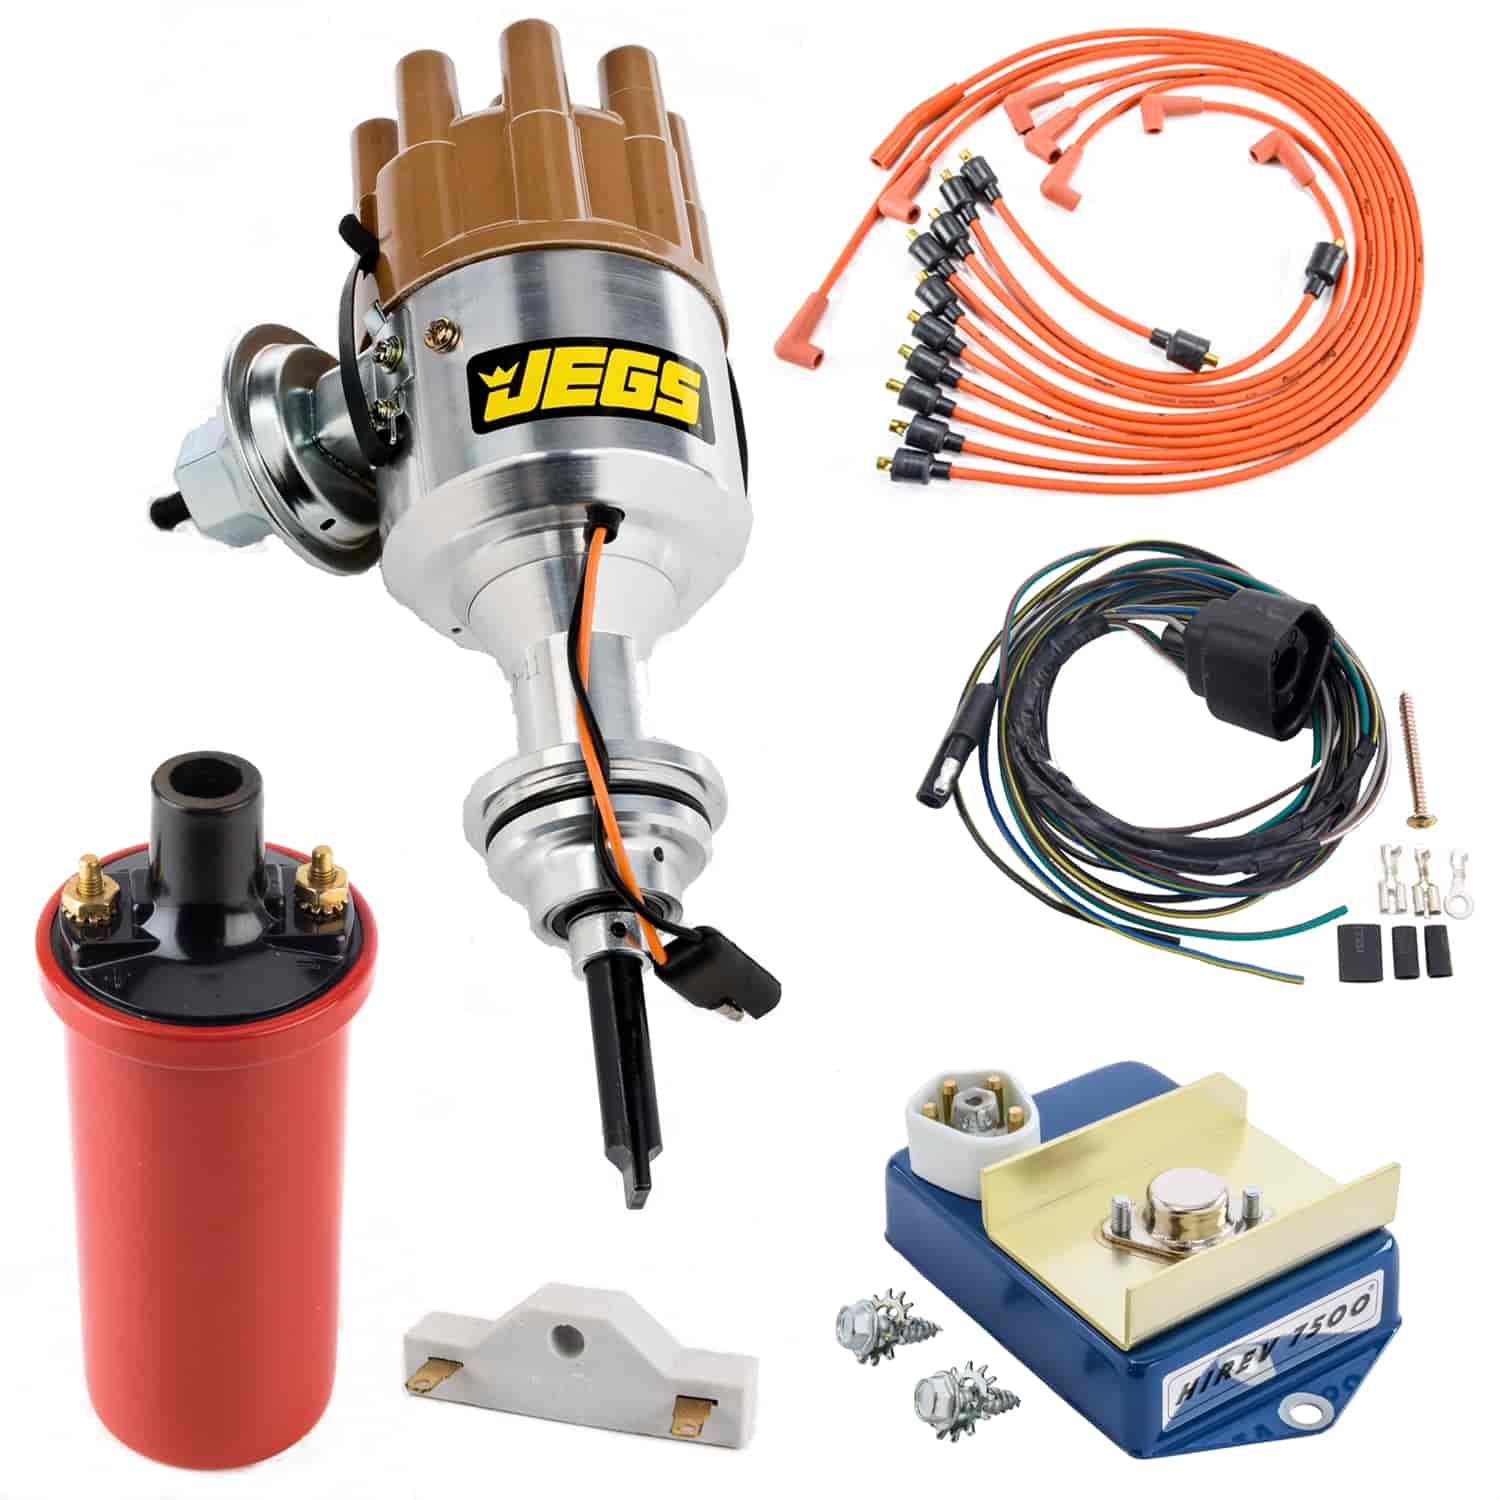 JEGS Performance Products 40504K1 - JEGS Mopar Electronic Ignition Conversion Kits with Forged Distributors